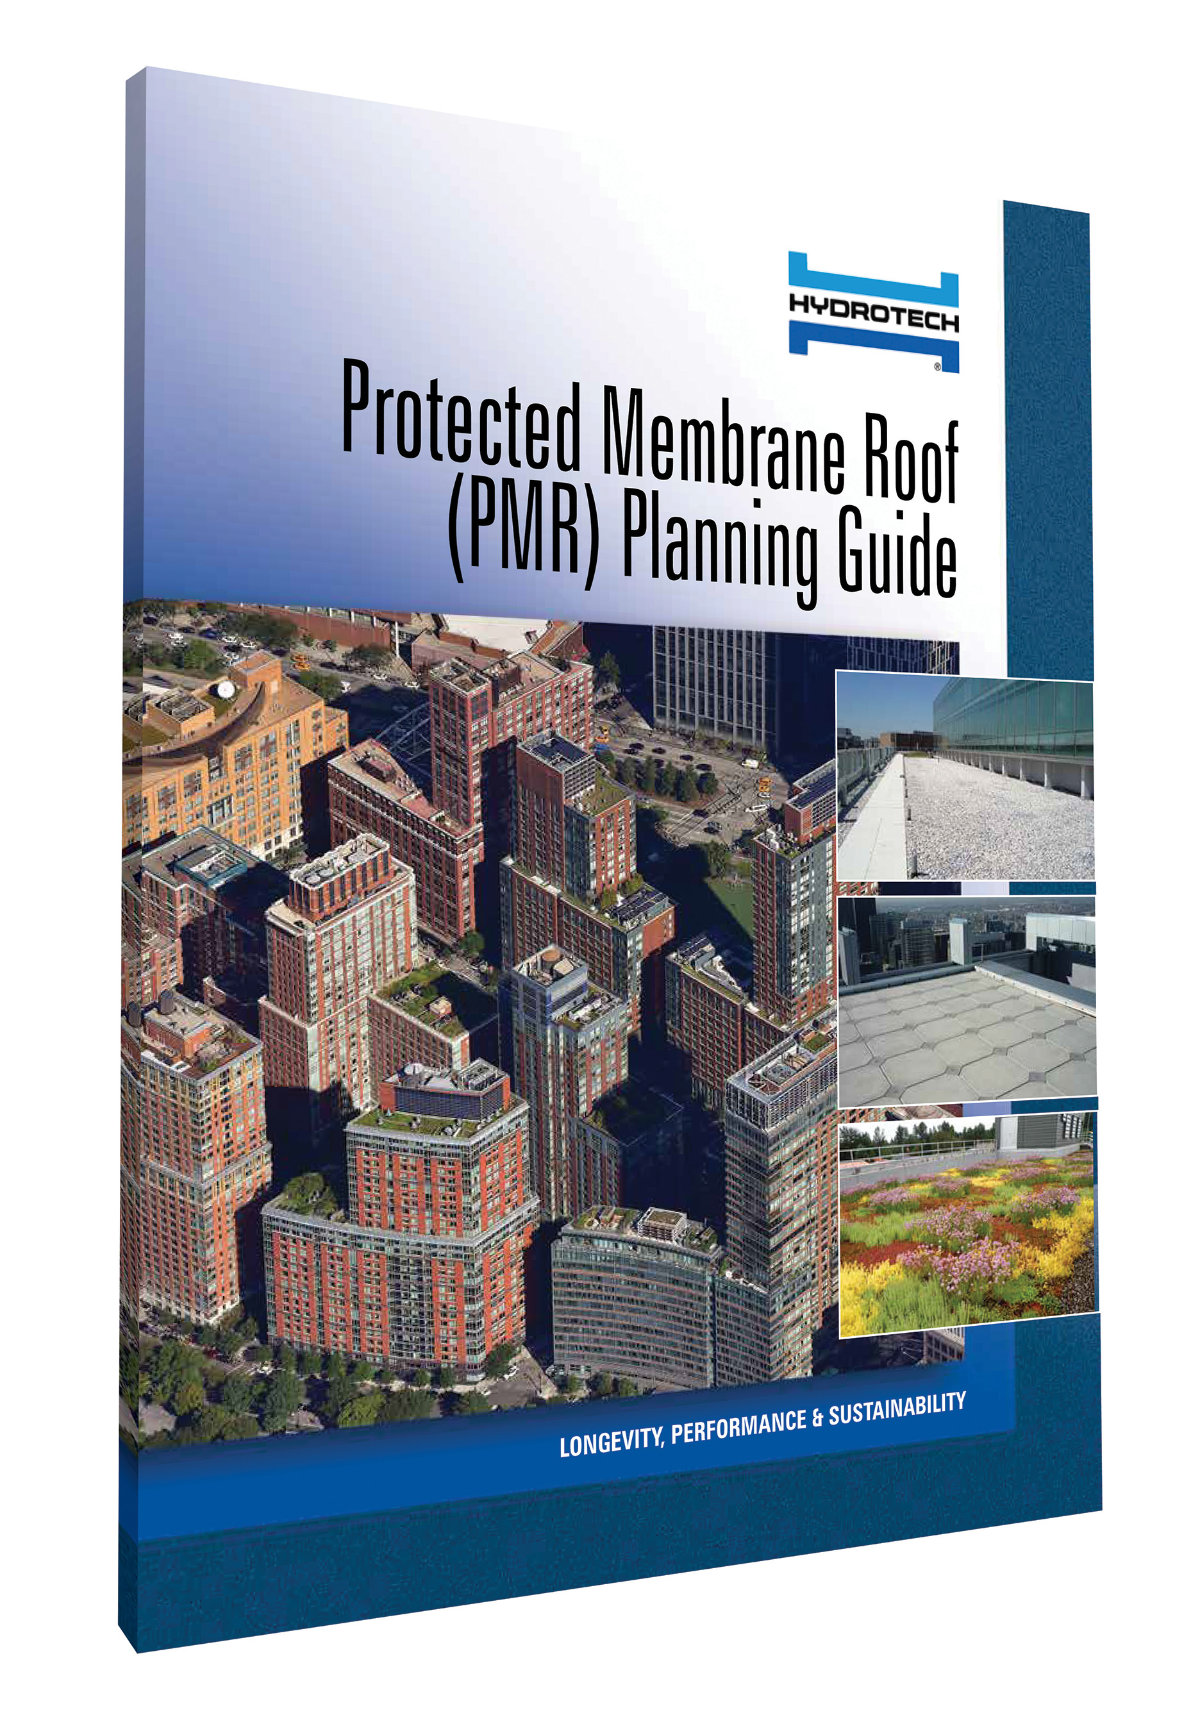 Protected Membrane Roof Planning Guide